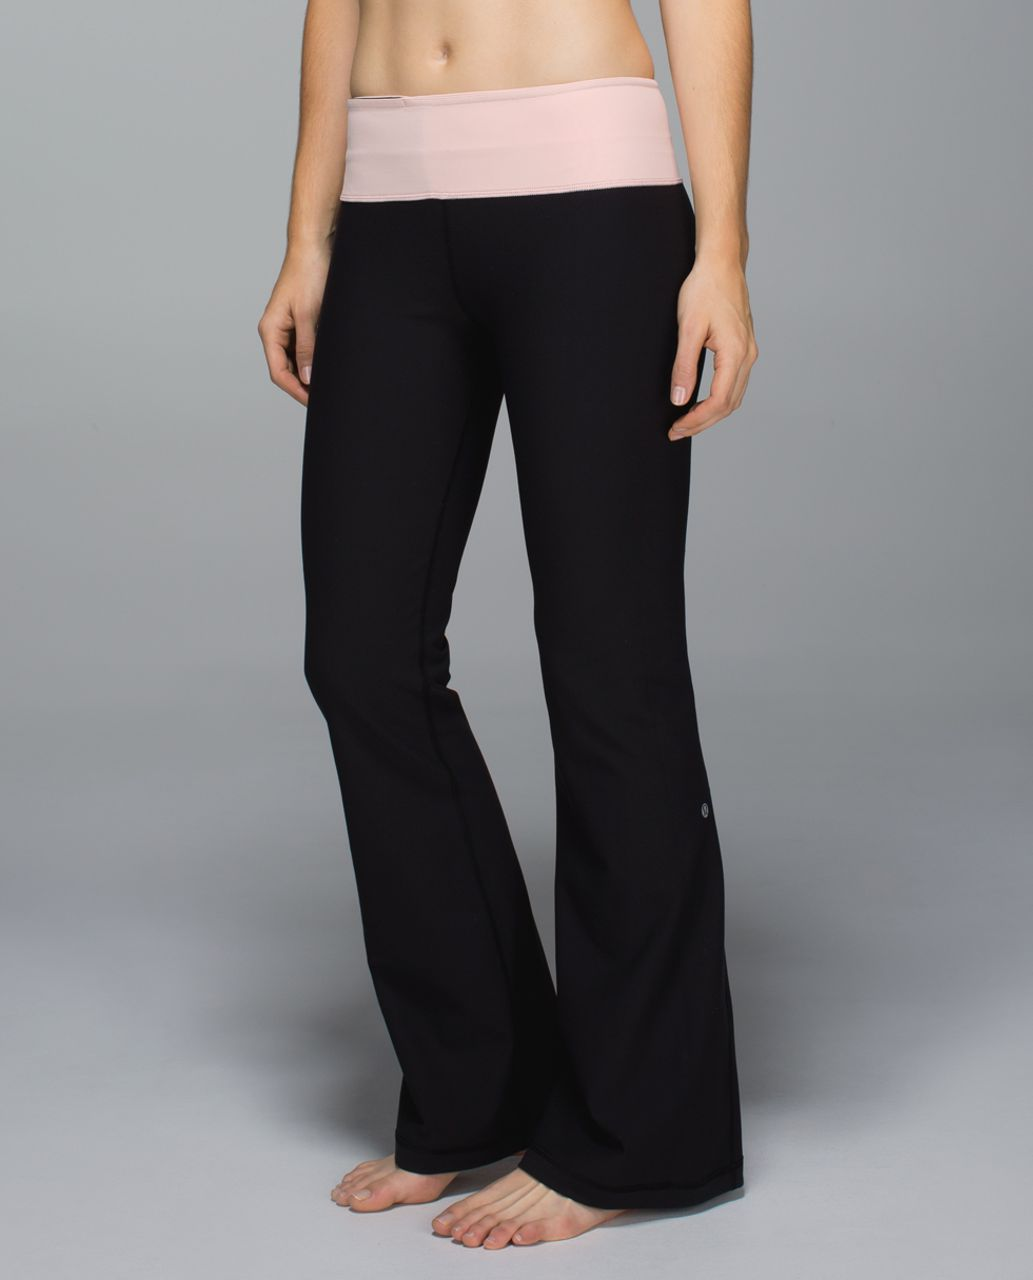 Lululemon Groove Pant *Full-On Luon (Tall) - Black / Parfait Pink / Speckle Dot Parfait Pink Black